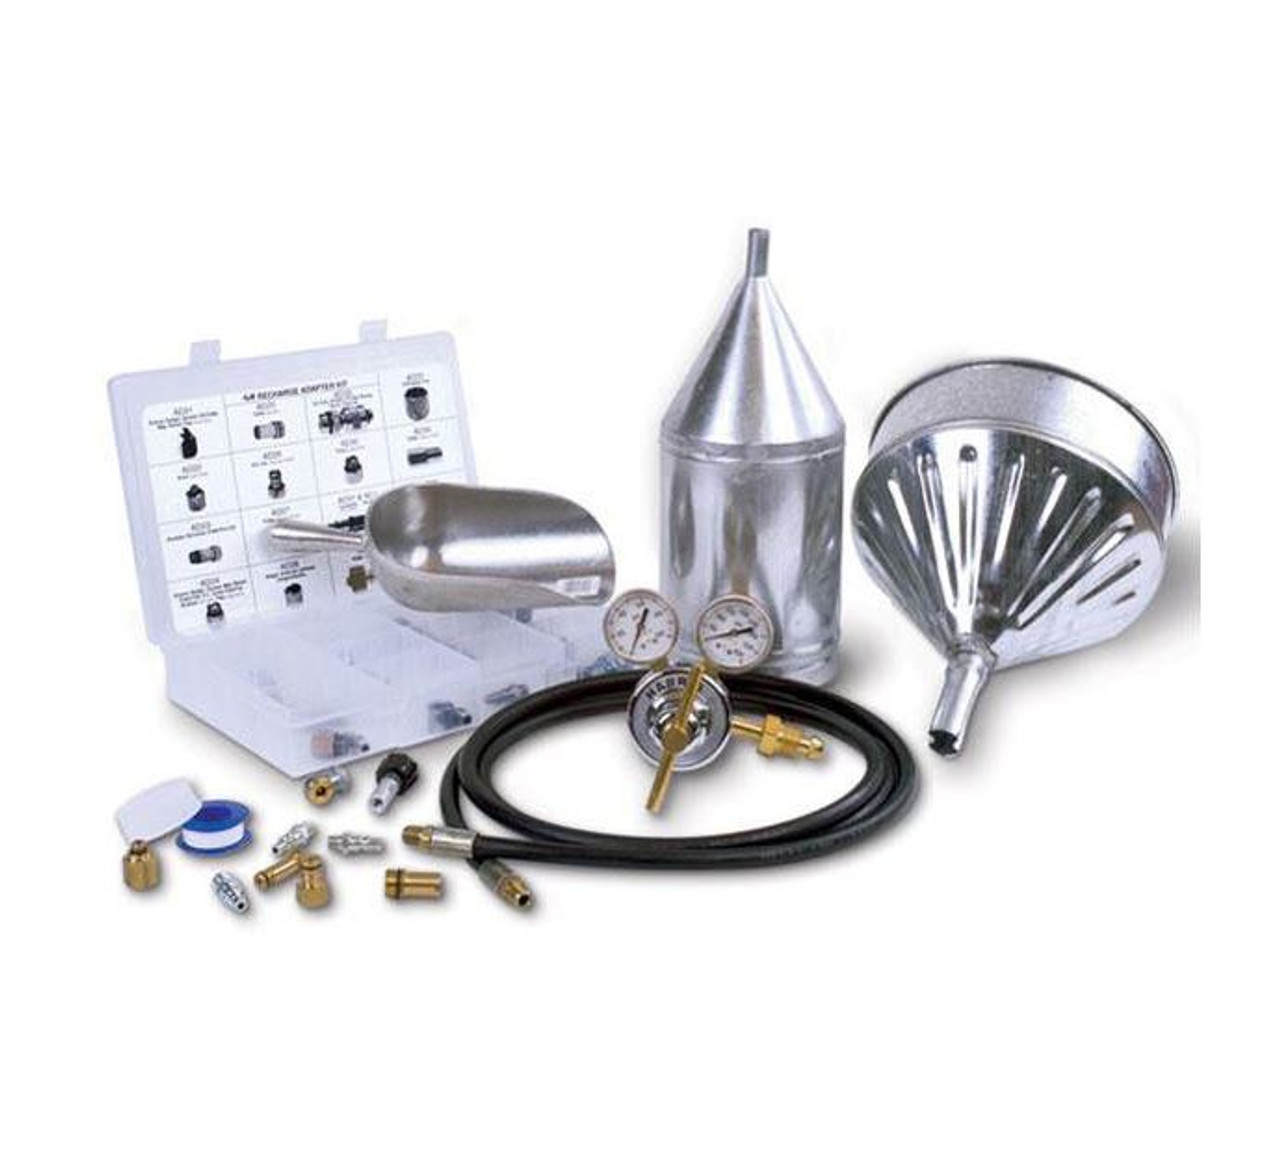 DCRK - Dry Chemical Refilling Kit